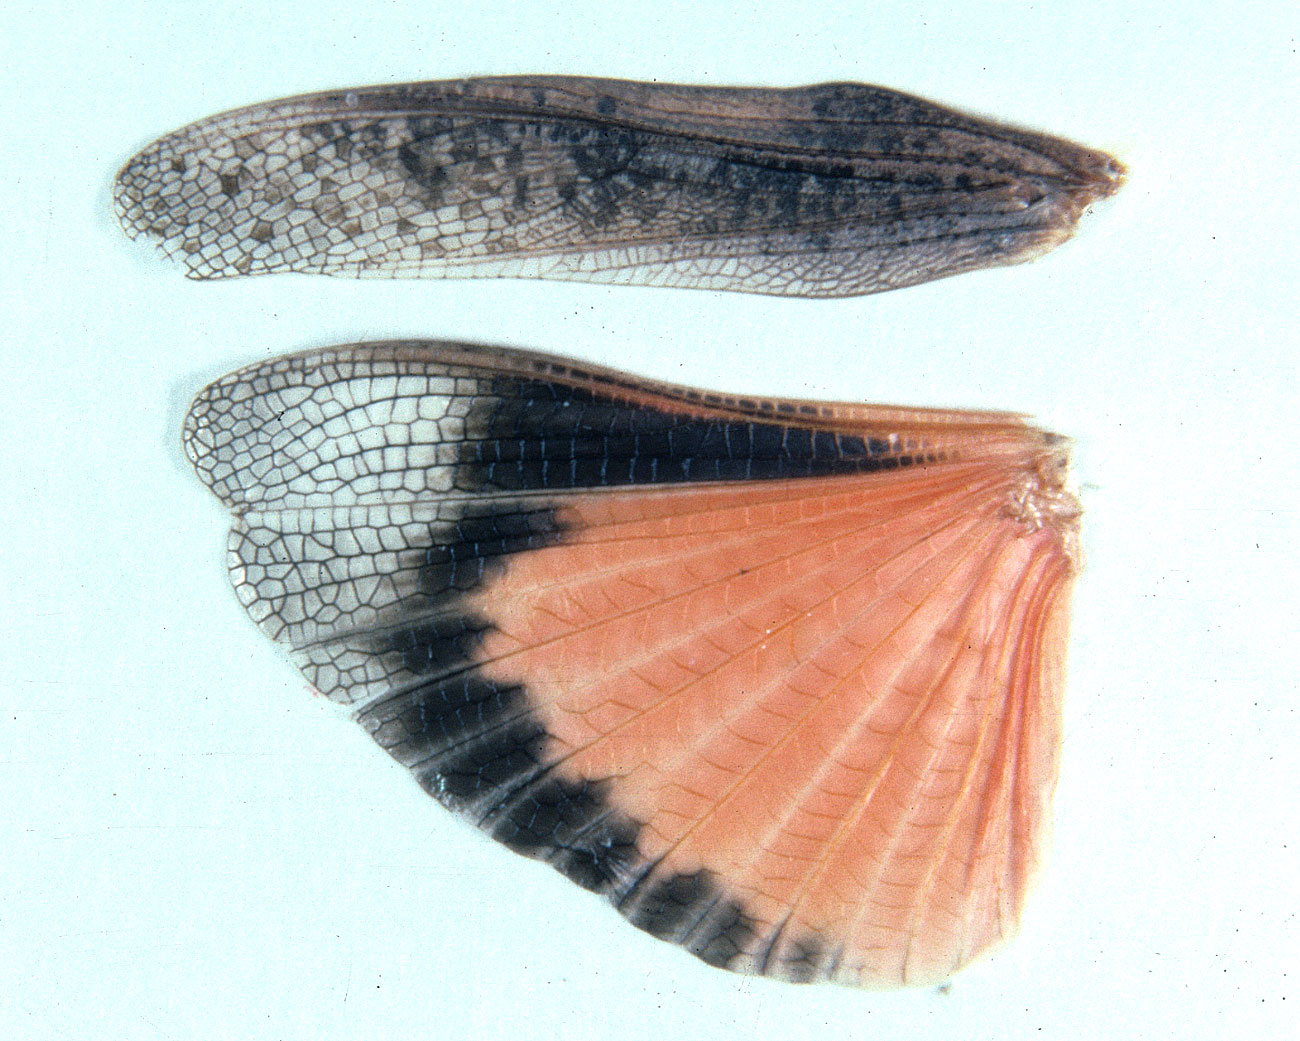 forewing (tegmen) and hindwing of female